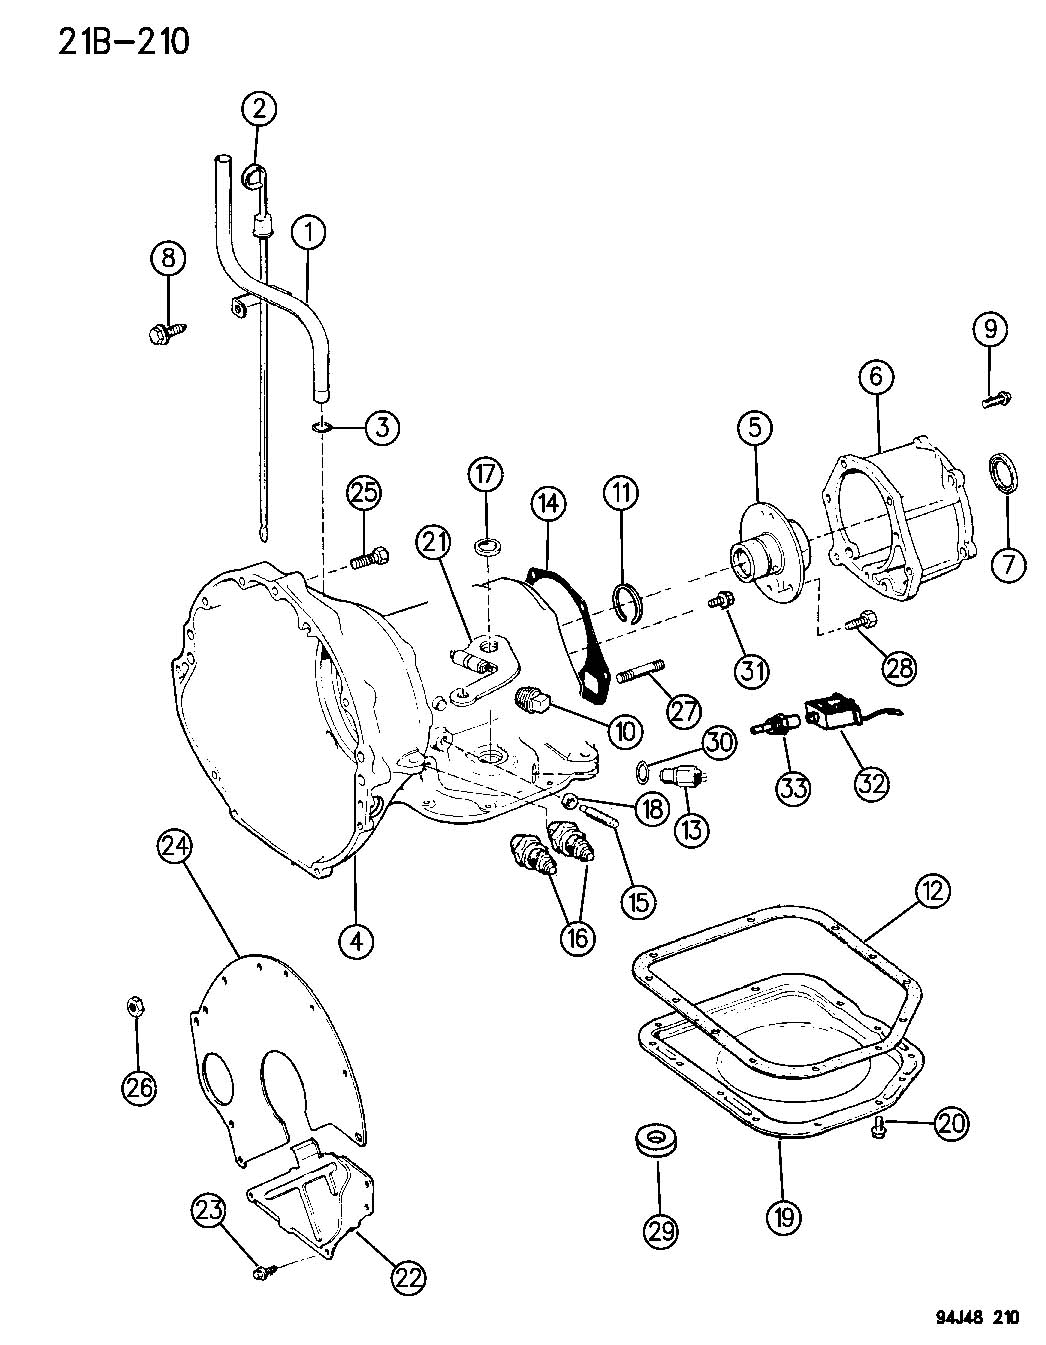 2010 Jeep Wrangler Wiring Diagram : Diagram Wiring Diagram